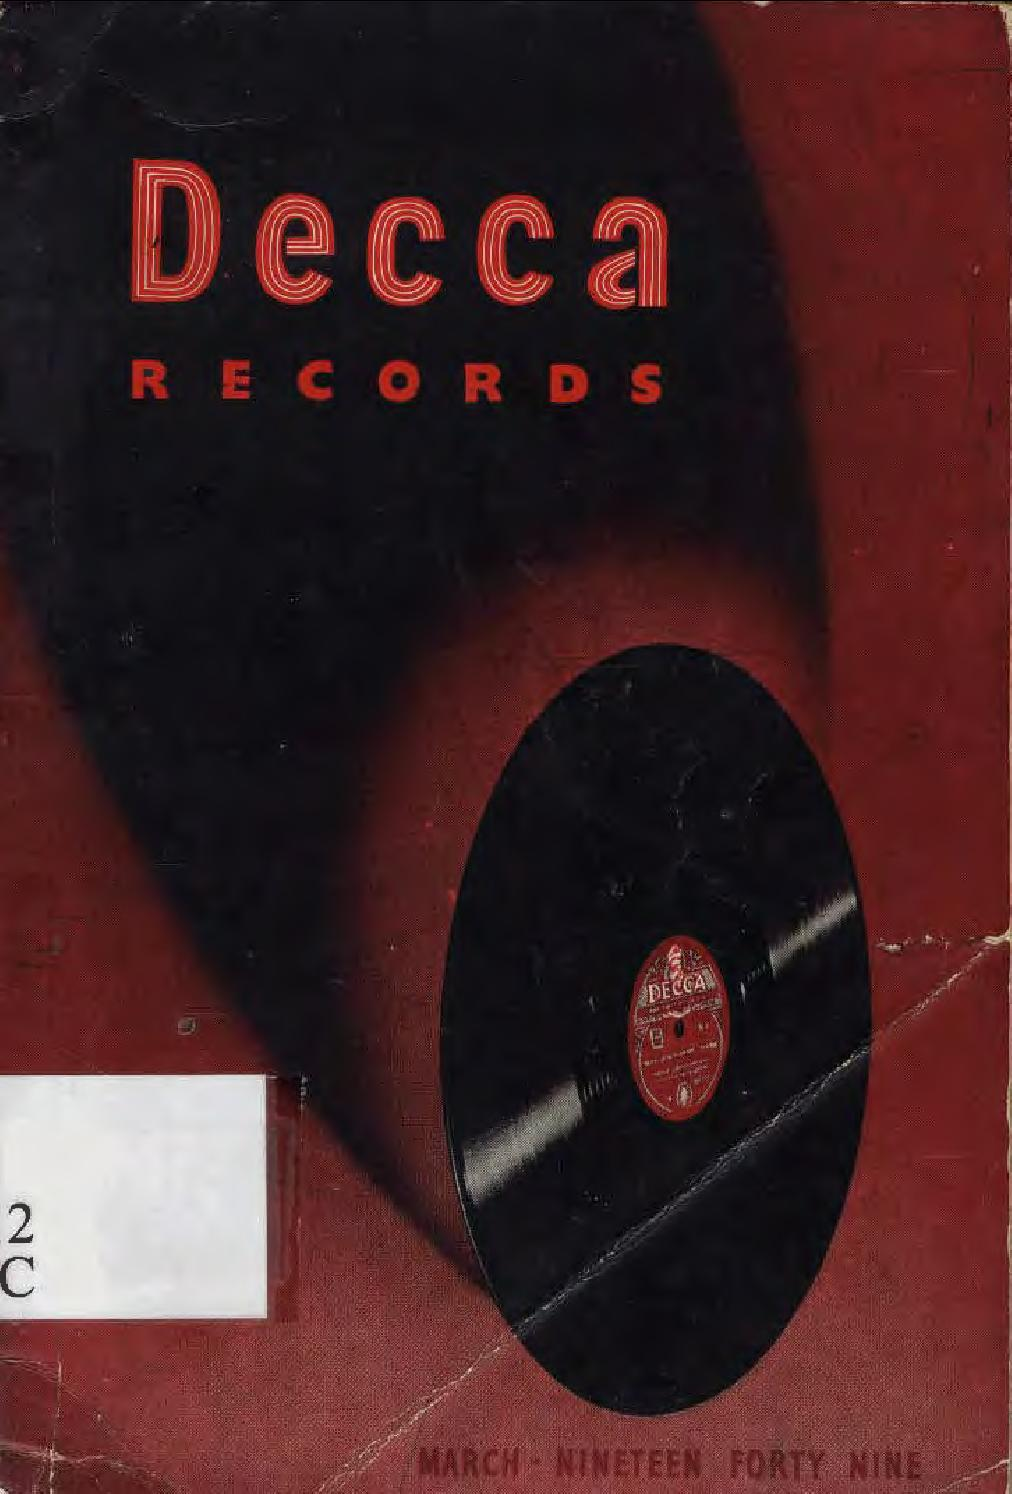 Decca records general catalogue 1949 (London GB) by 78rpm